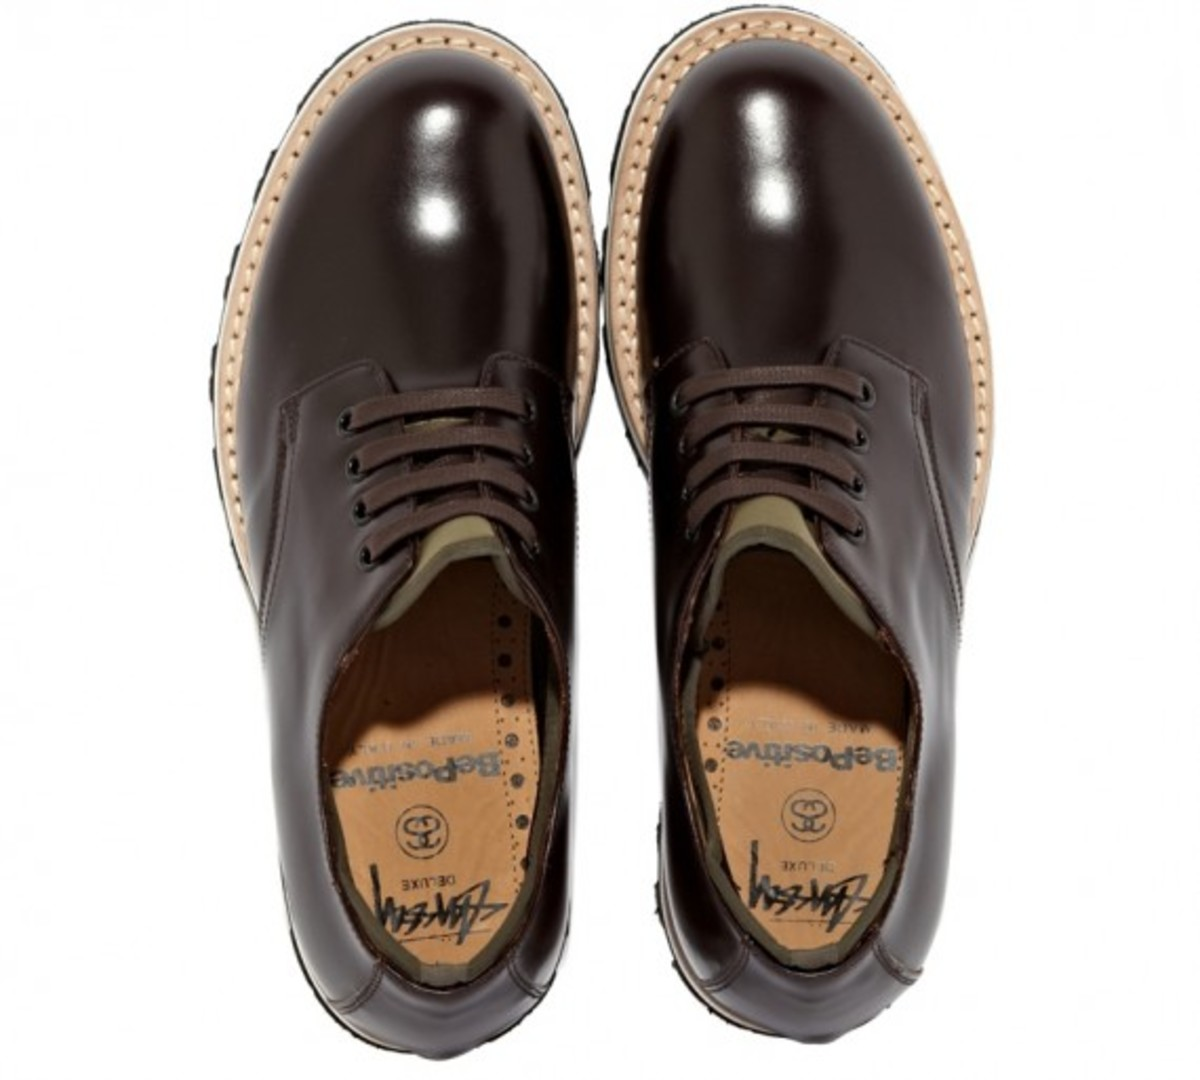 stussy-deluxe-be-positive-leather-shoes-08